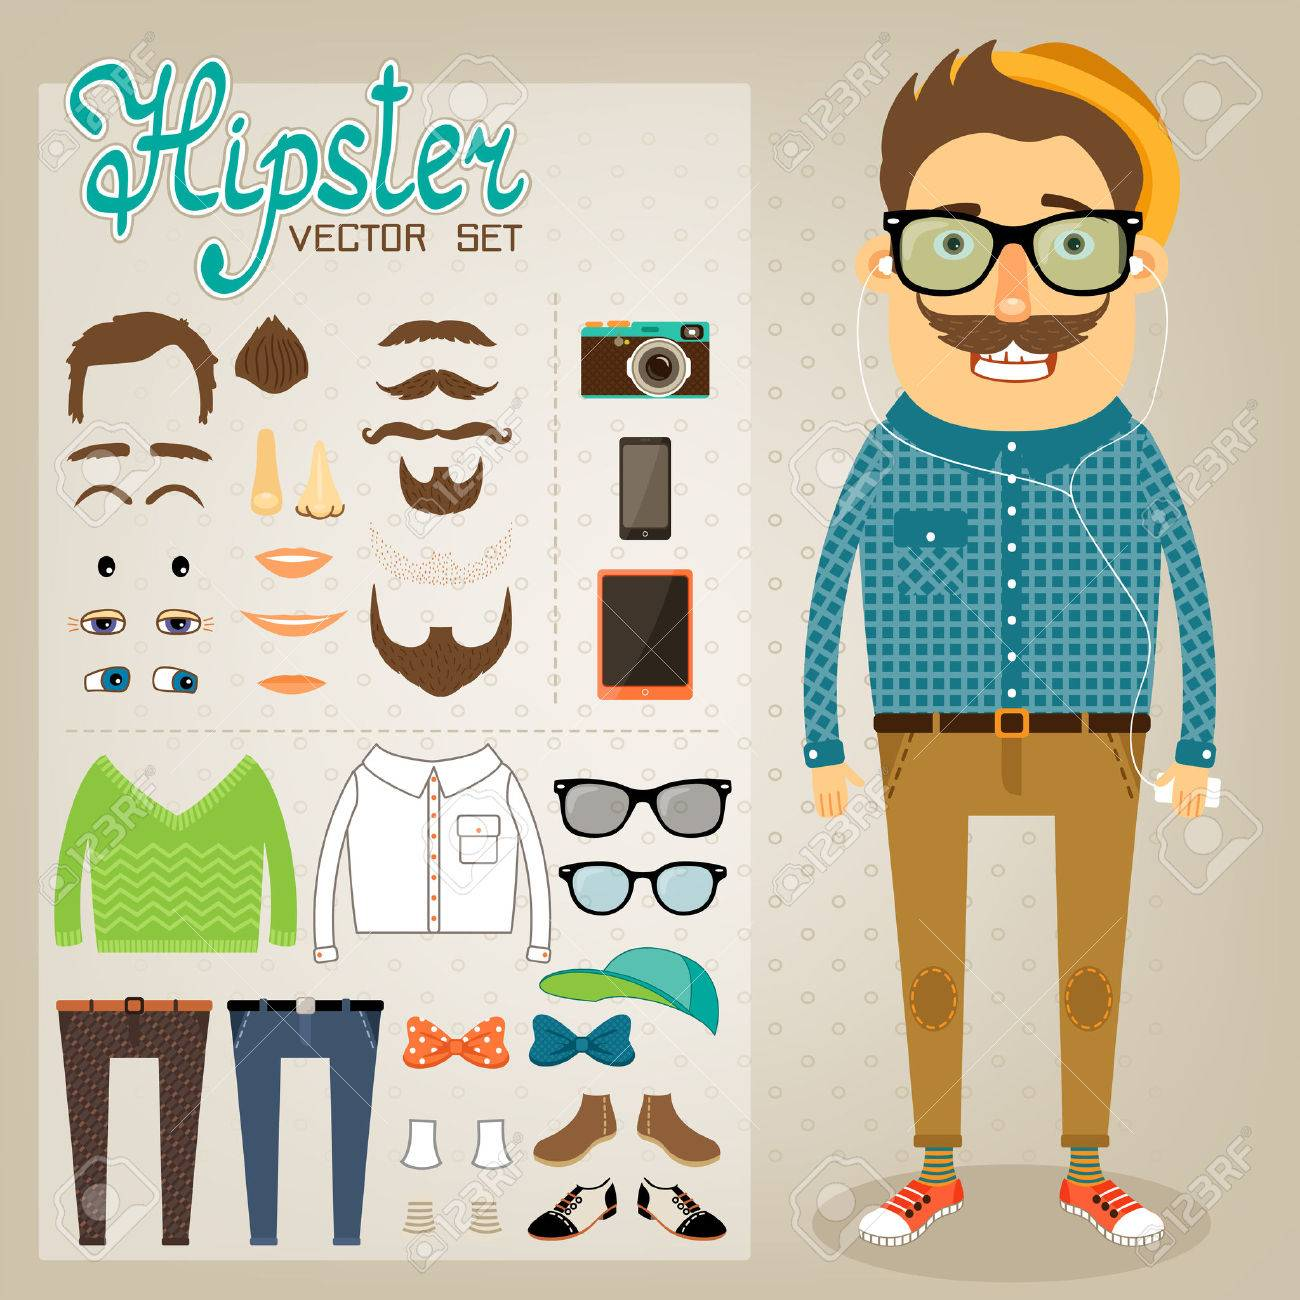 Hipster character pack for geek boy with accessory clothing and facial elements vector illustration - 25271675